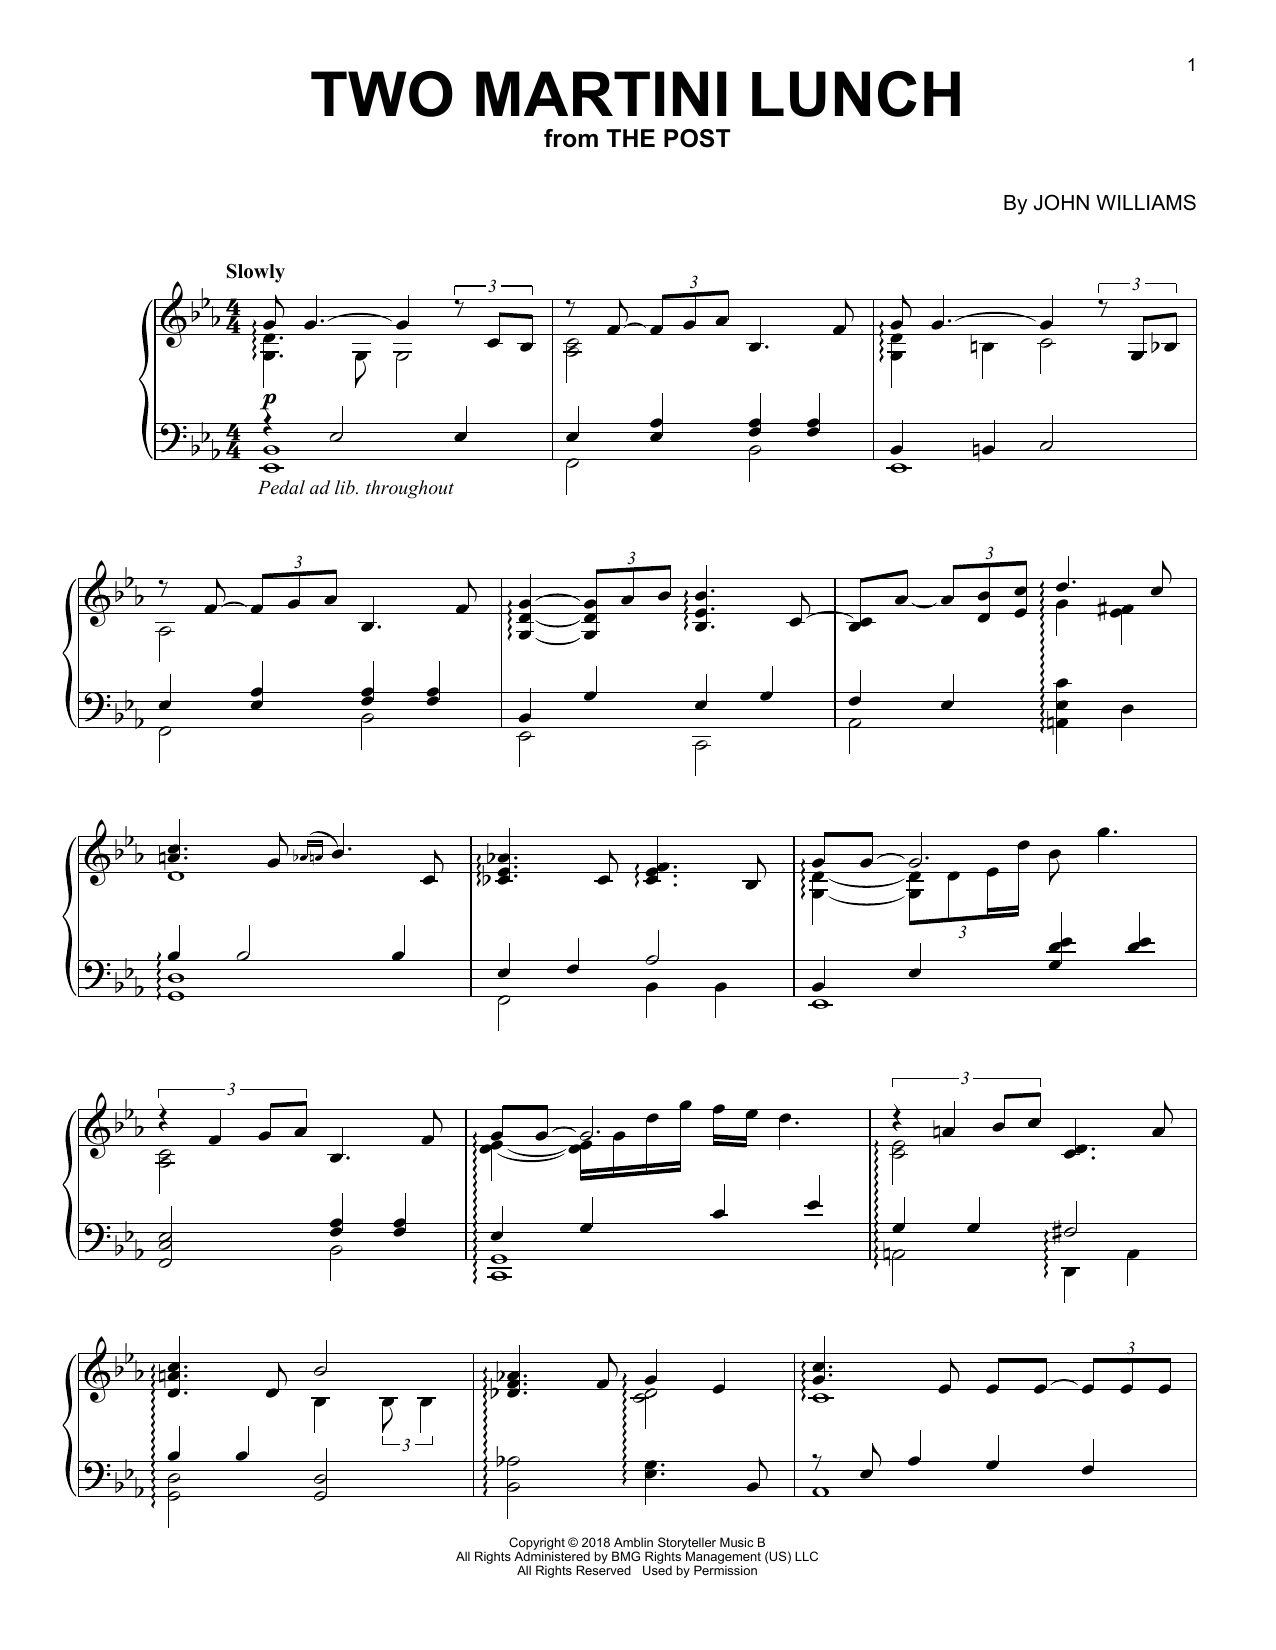 John Williams Two Martini Lunch (from The Post) sheet music notes and chords. Download Printable PDF.